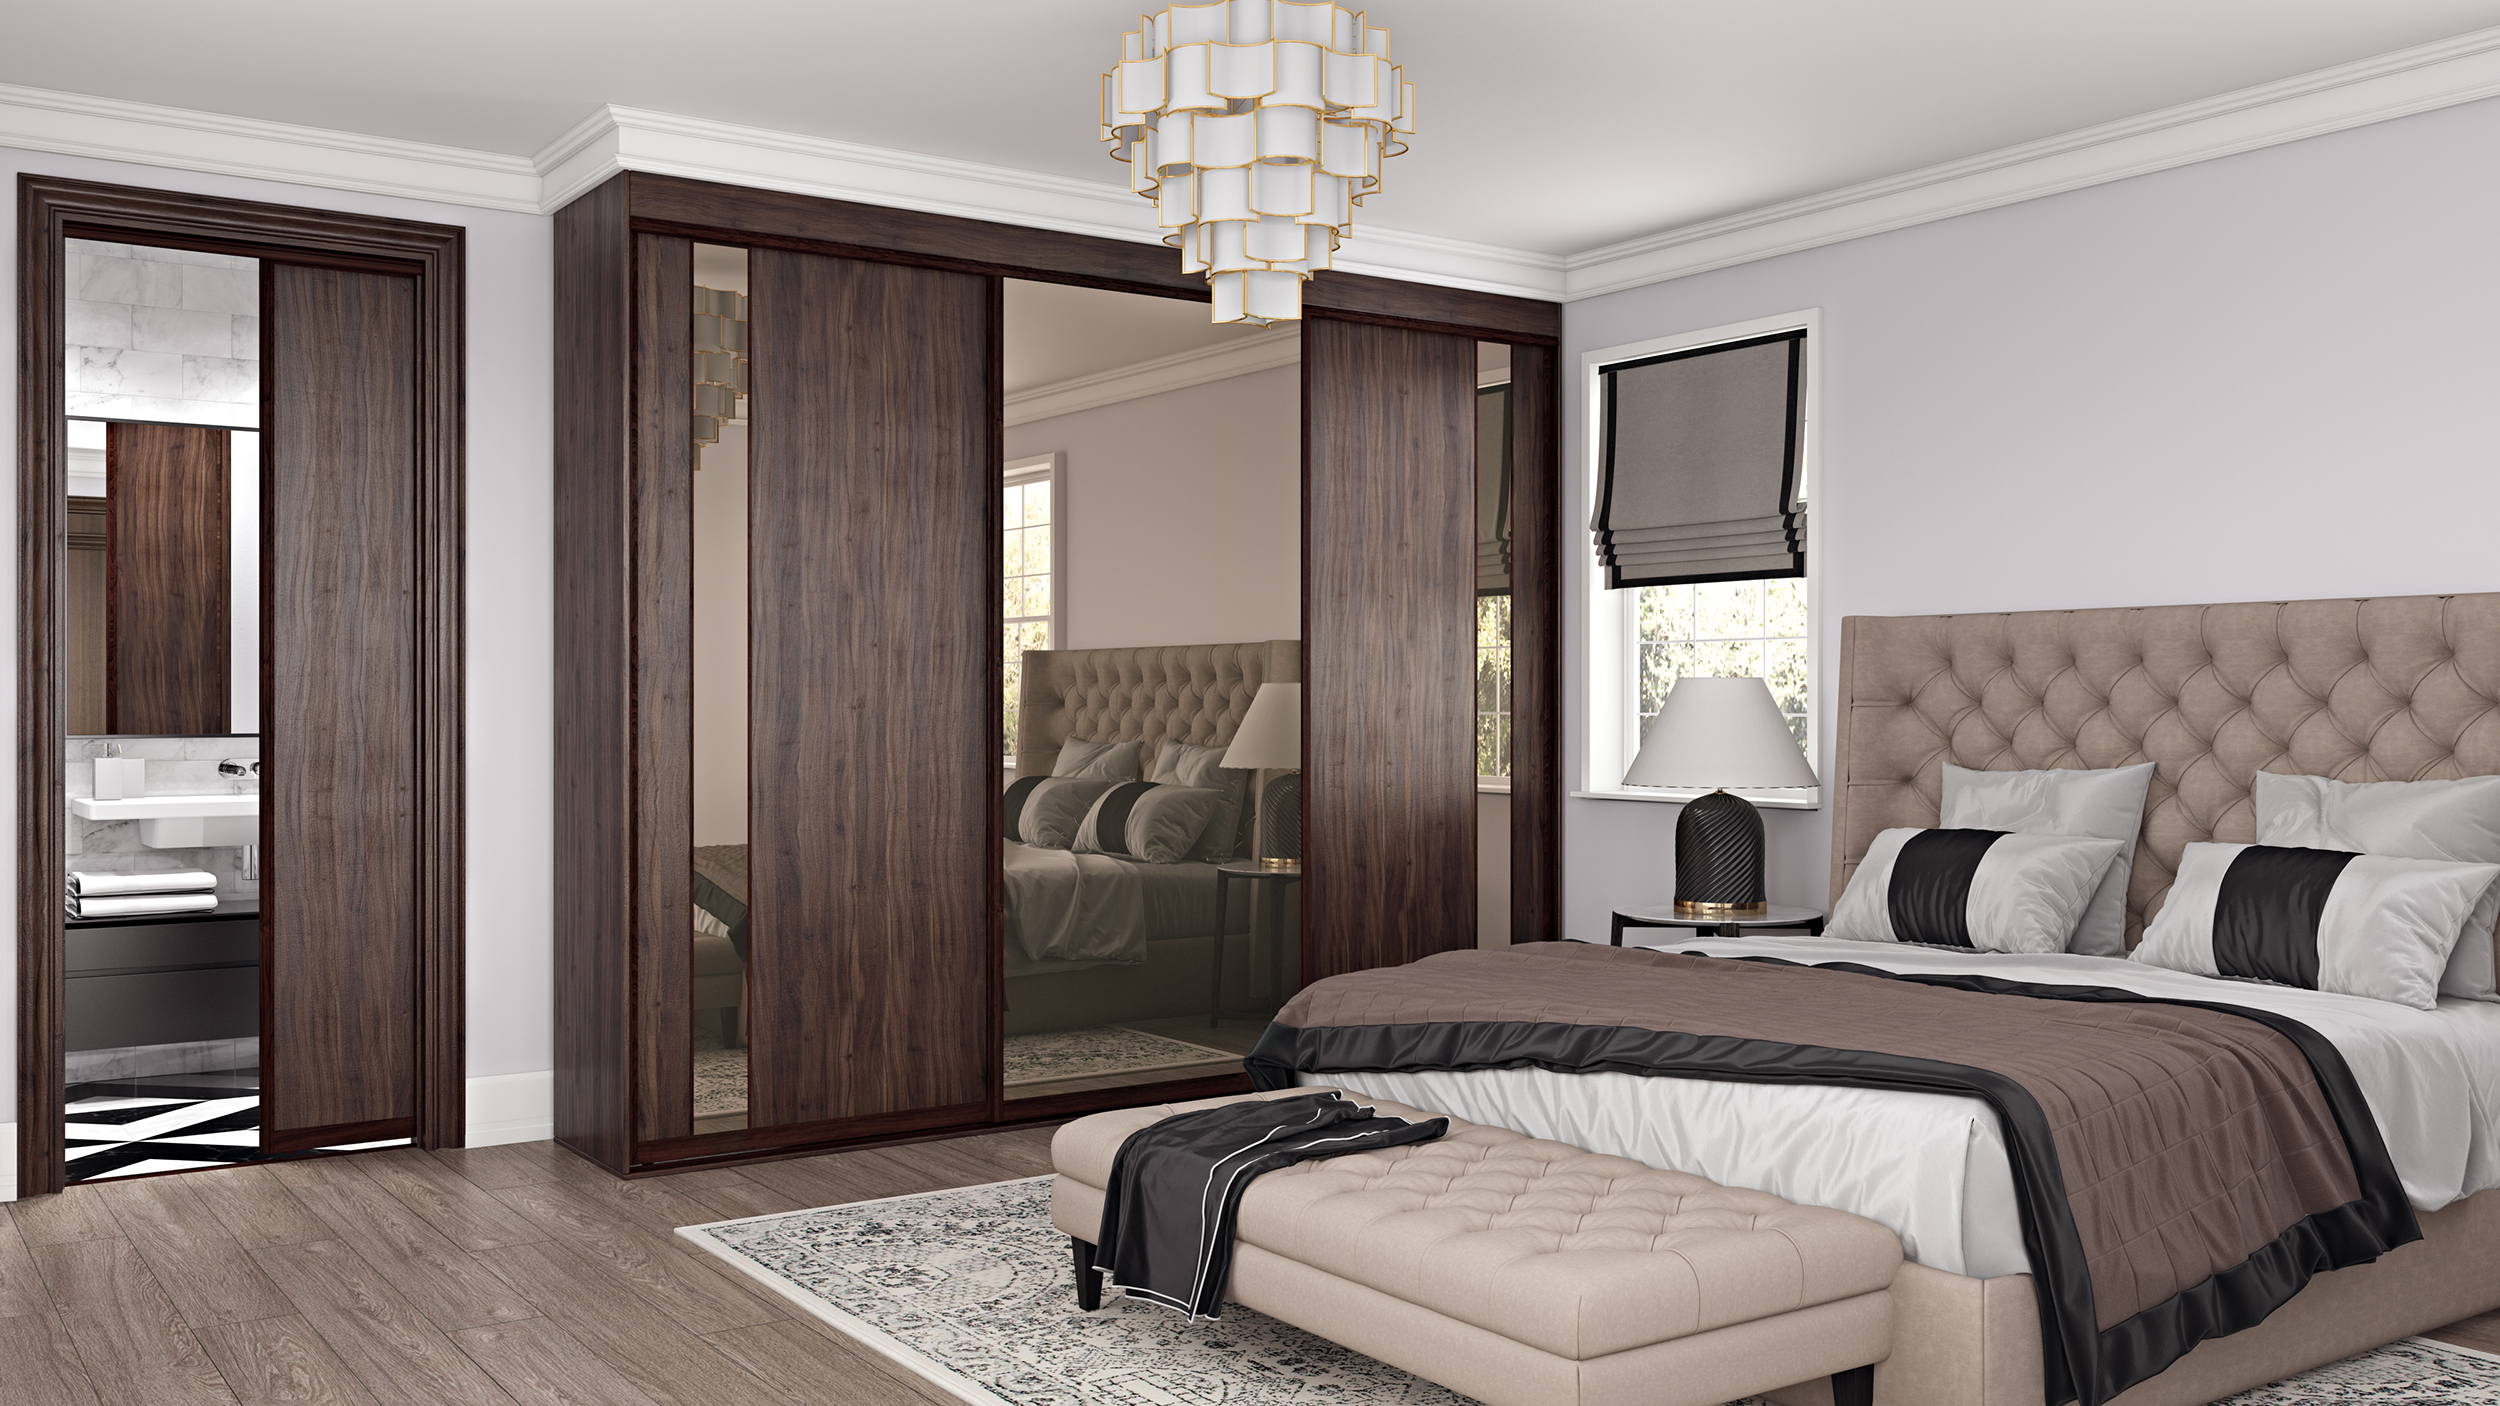 Both Simplicity and Tresana offer doors and components for use as room partitioning or pocket doors.